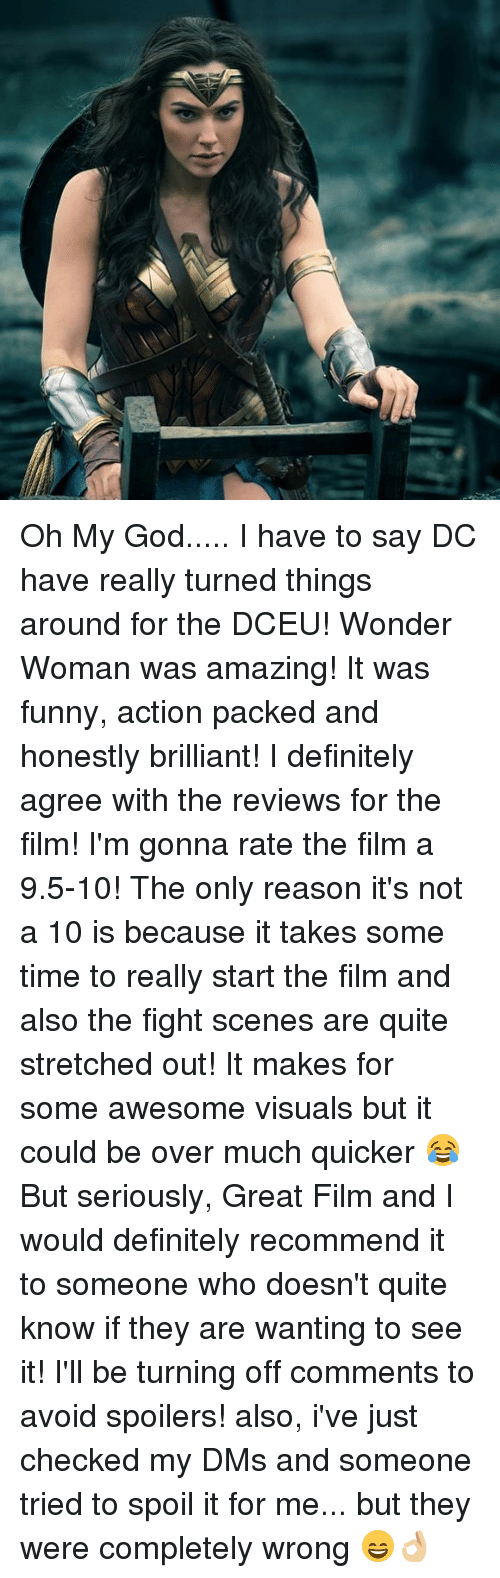 fight scenes: Oh My God..... I have to say DC have really turned things around for the DCEU! Wonder Woman was amazing! It was funny, action packed and honestly brilliant! I definitely agree with the reviews for the film! I'm gonna rate the film a 9.5-10! The only reason it's not a 10 is because it takes some time to really start the film and also the fight scenes are quite stretched out! It makes for some awesome visuals but it could be over much quicker 😂 But seriously, Great Film and I would definitely recommend it to someone who doesn't quite know if they are wanting to see it! I'll be turning off comments to avoid spoilers! also, i've just checked my DMs and someone tried to spoil it for me... but they were completely wrong 😄👌🏼